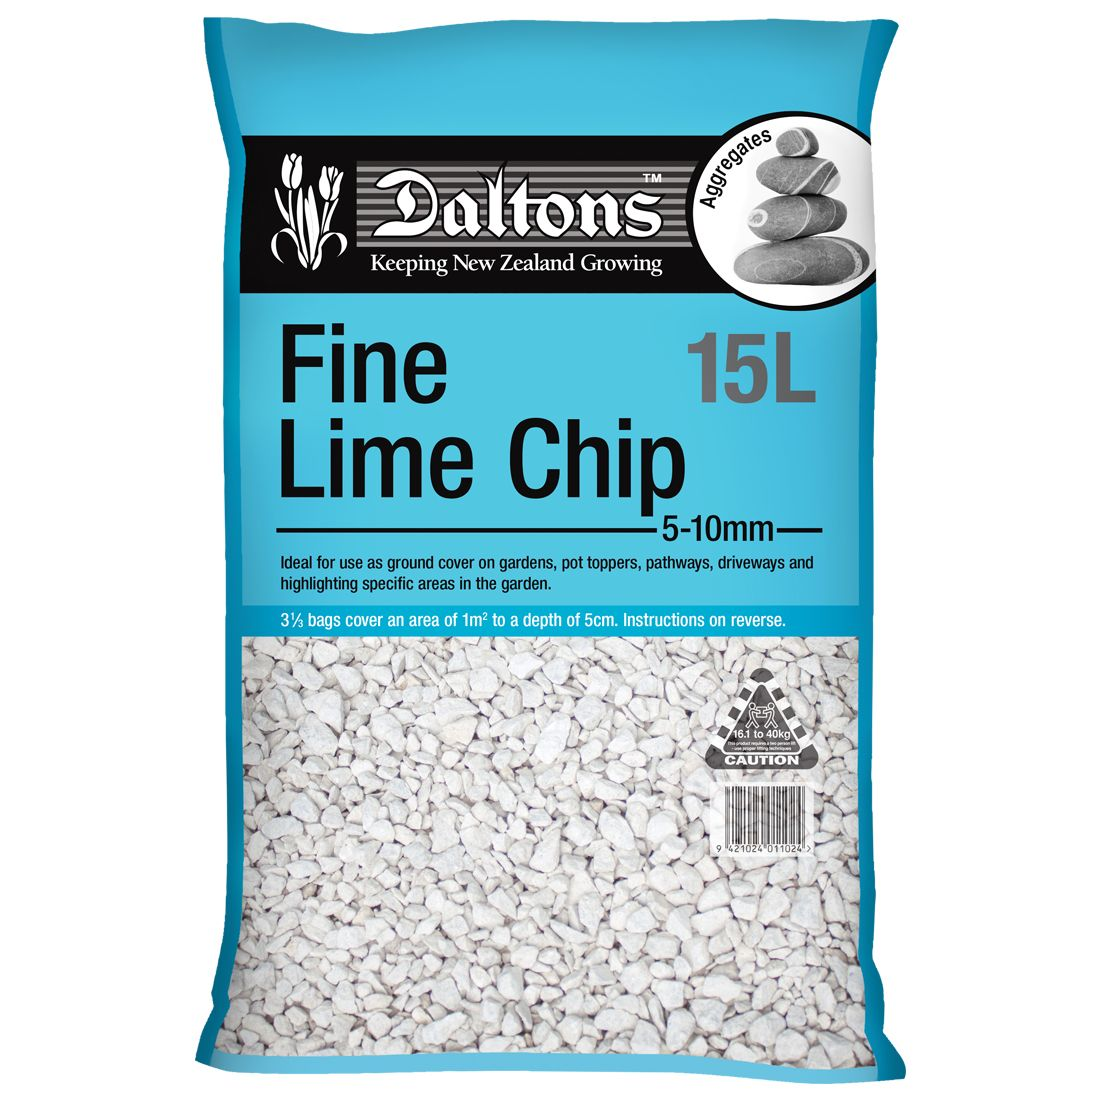 Fine Lime Chip 15L Bag